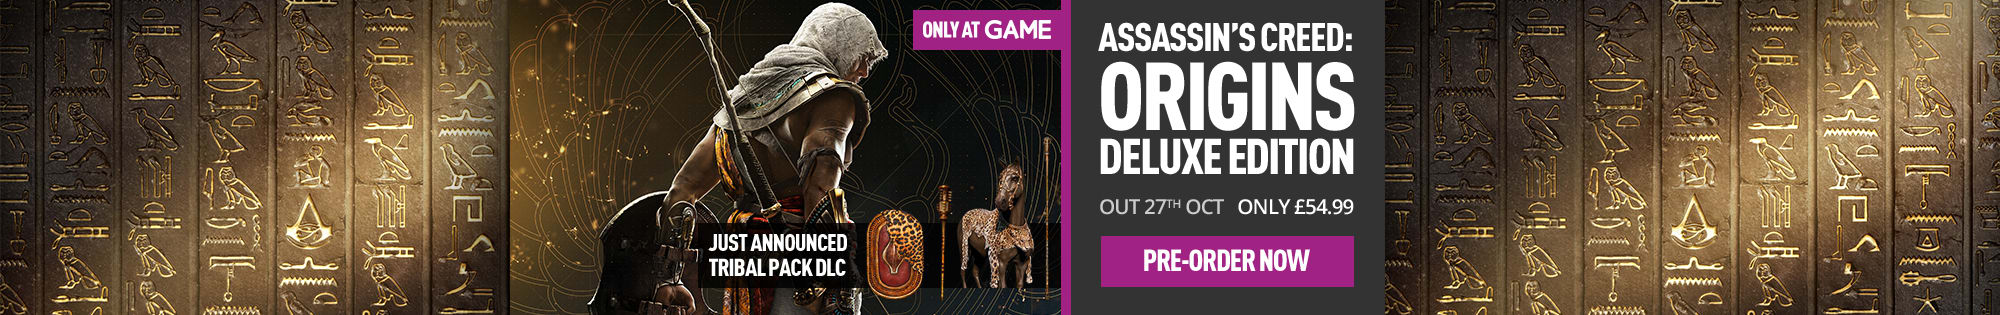 Assassins Creed Origins - Homepage banner